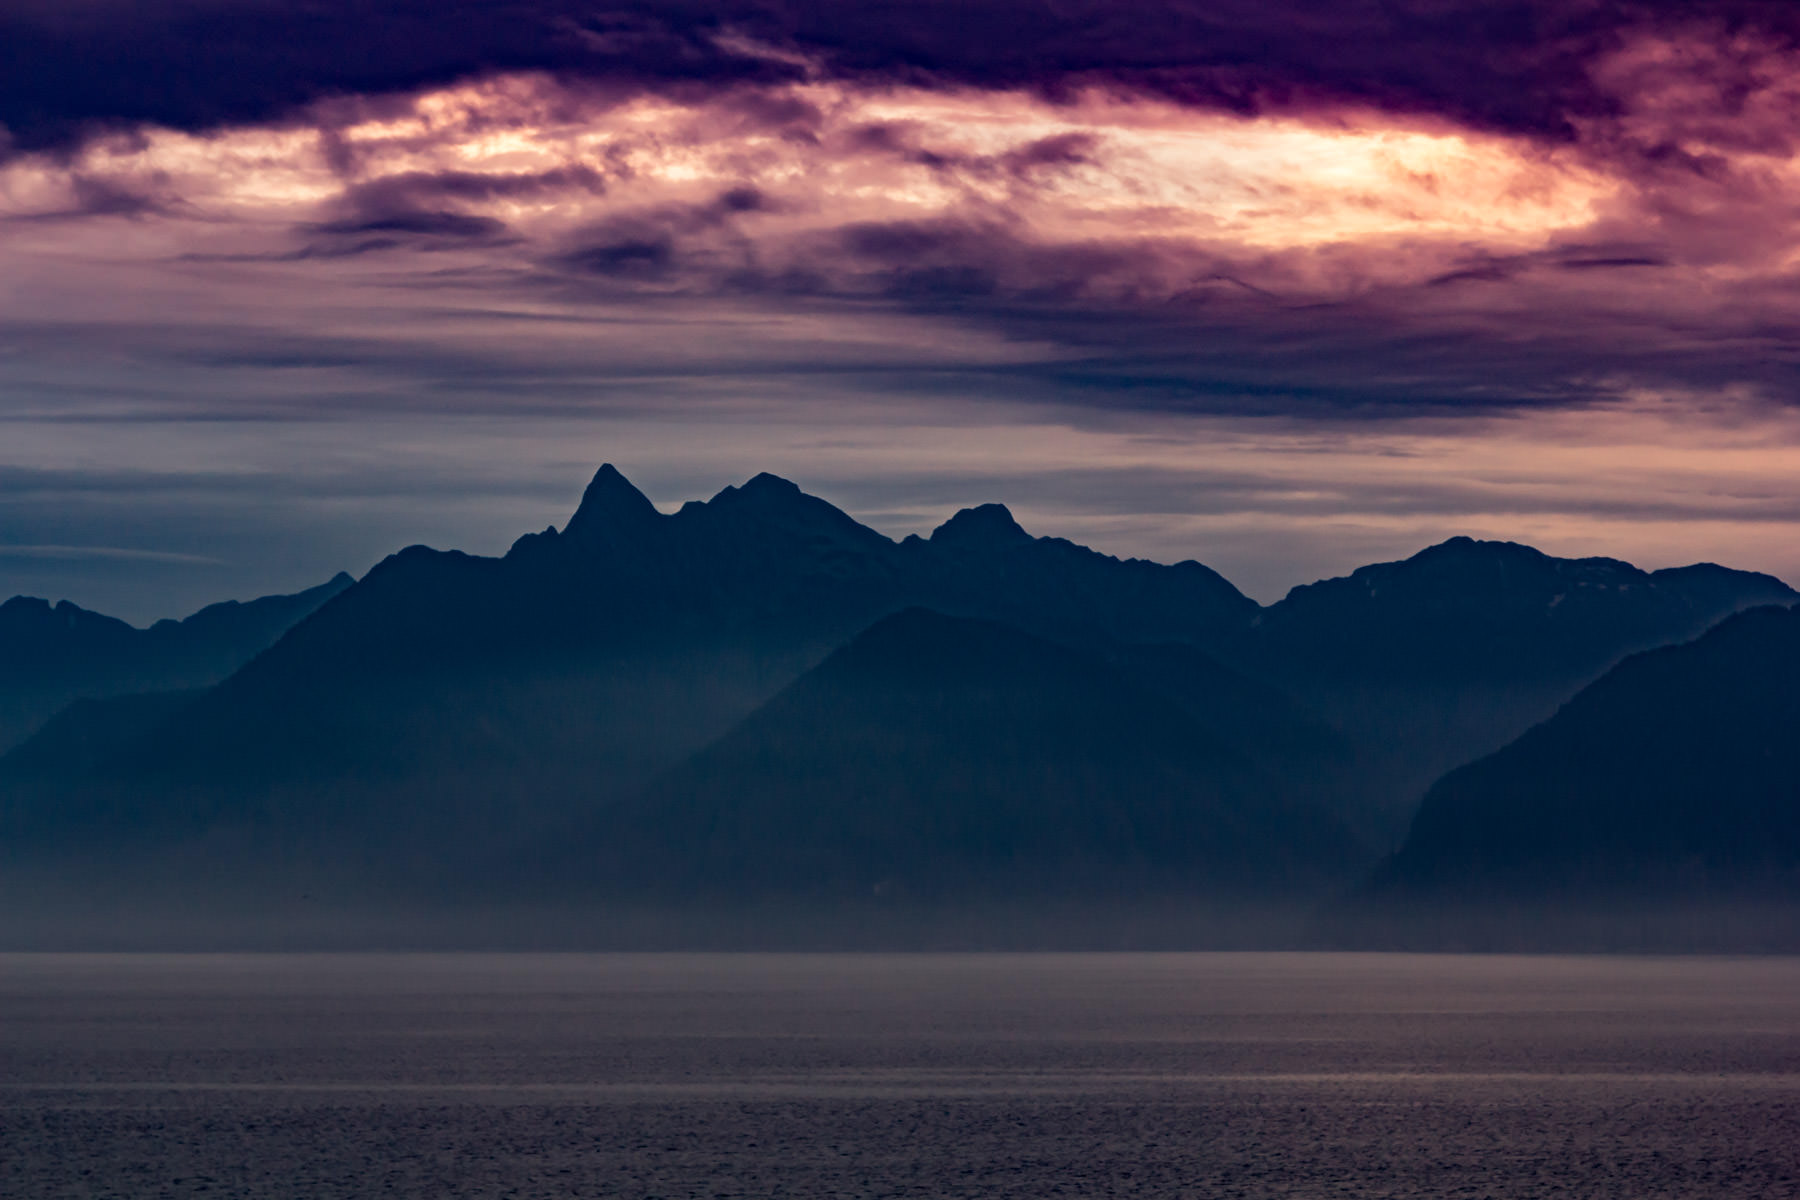 The morning sun lights up the sky beyond the mountain peaks of Alaska's Kuiu Island as seen from Chatham Strait.